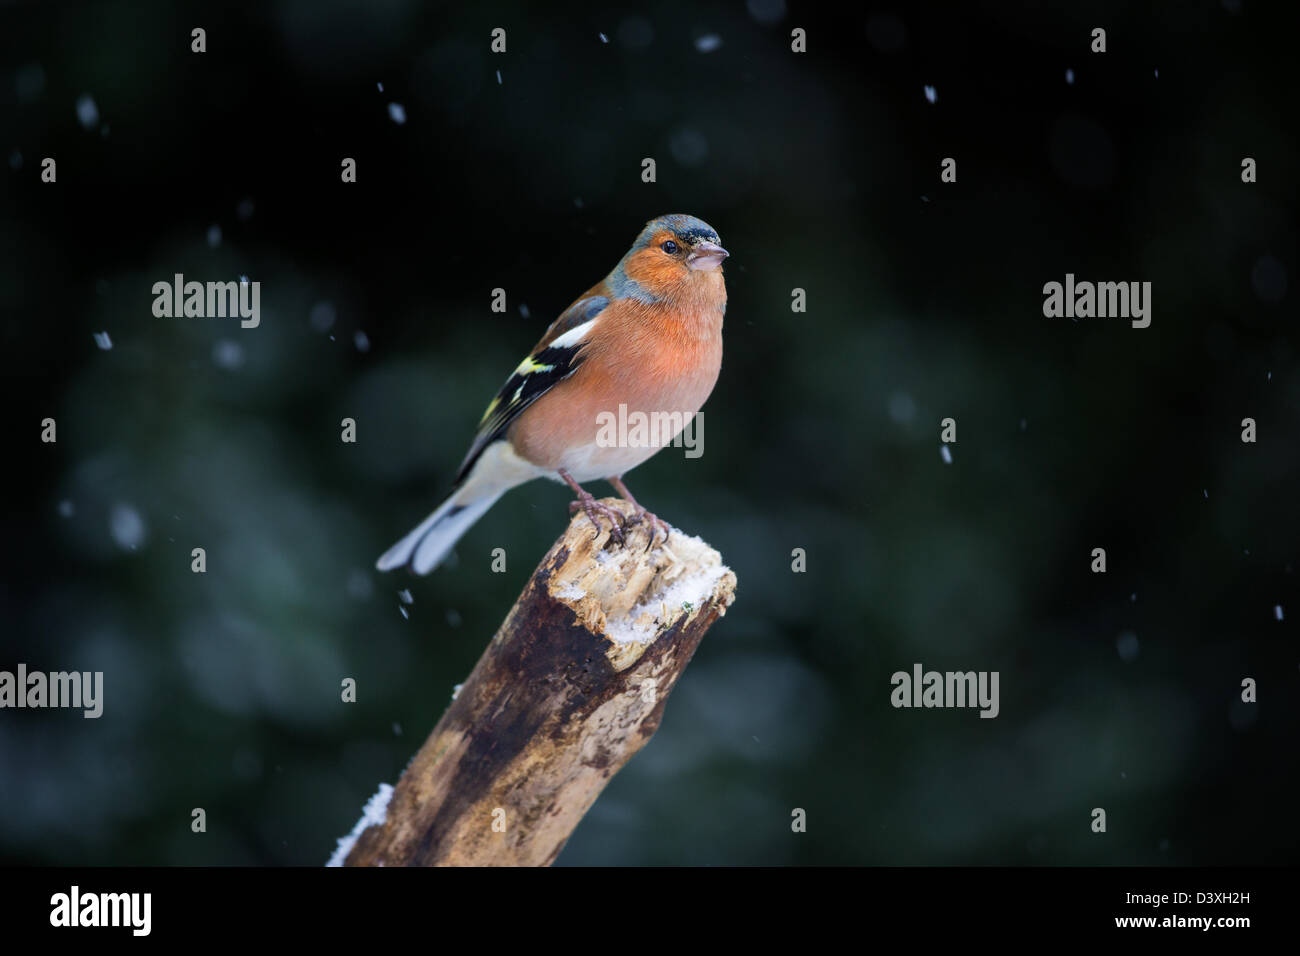 Male chaffinch (Fringilla coelebs) perched on an old branch during a snow storm. - Stock Image